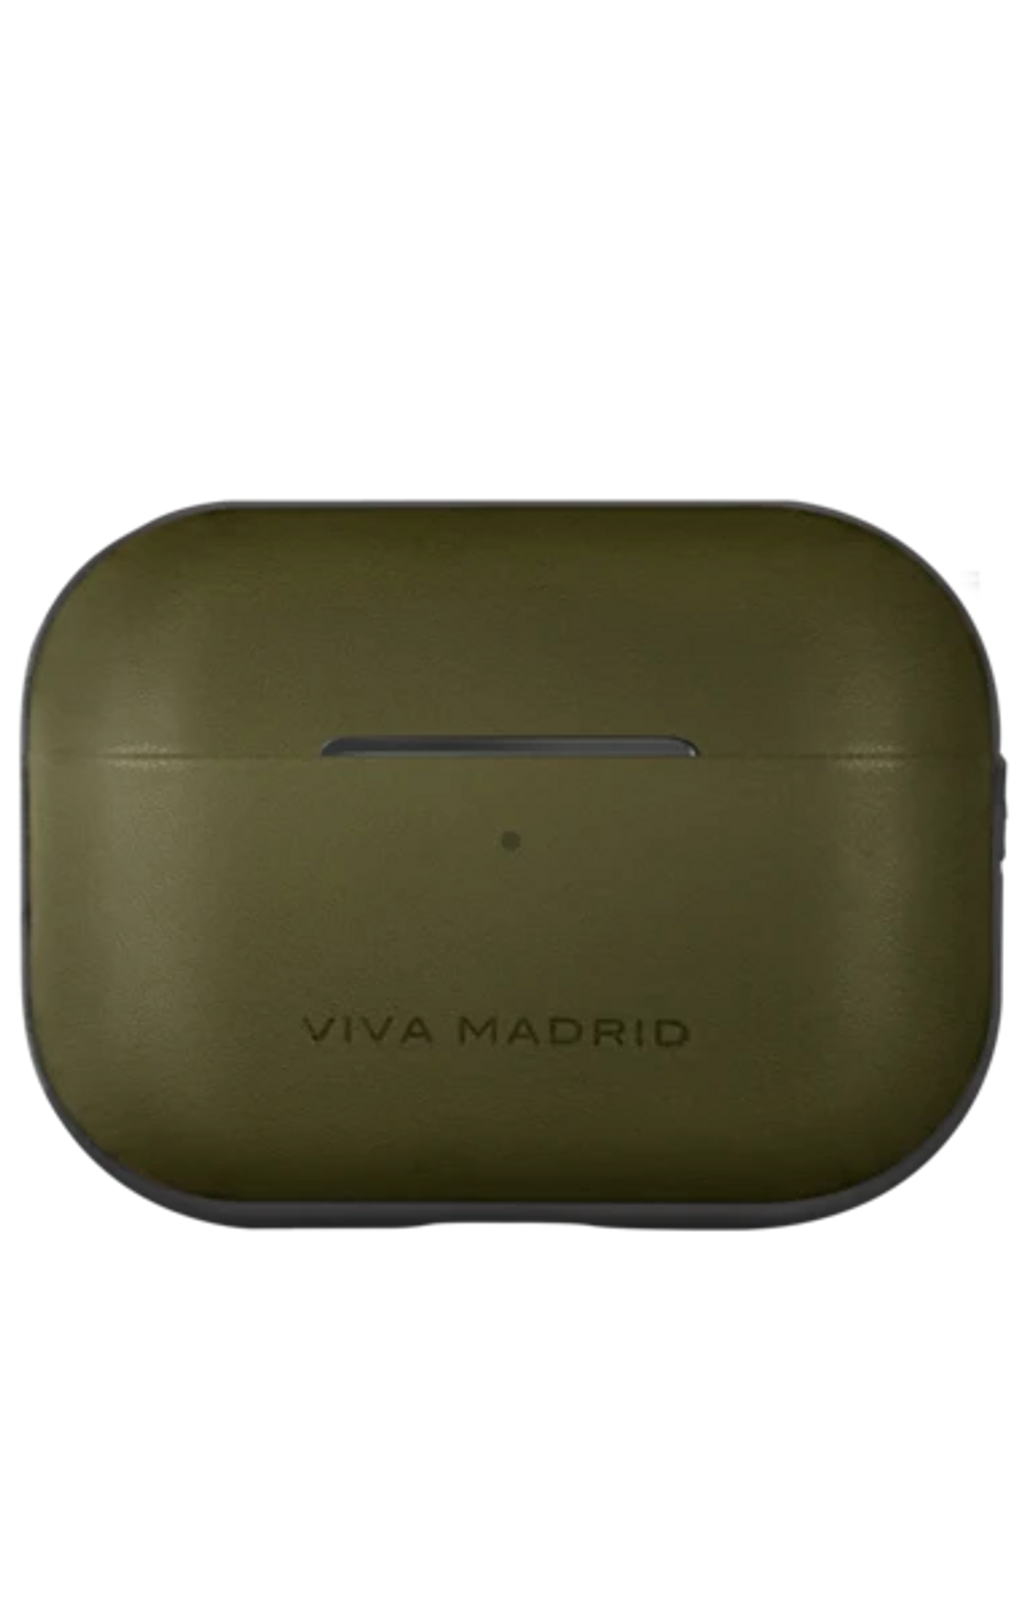 airpods_pro_olive_close_600x600.png